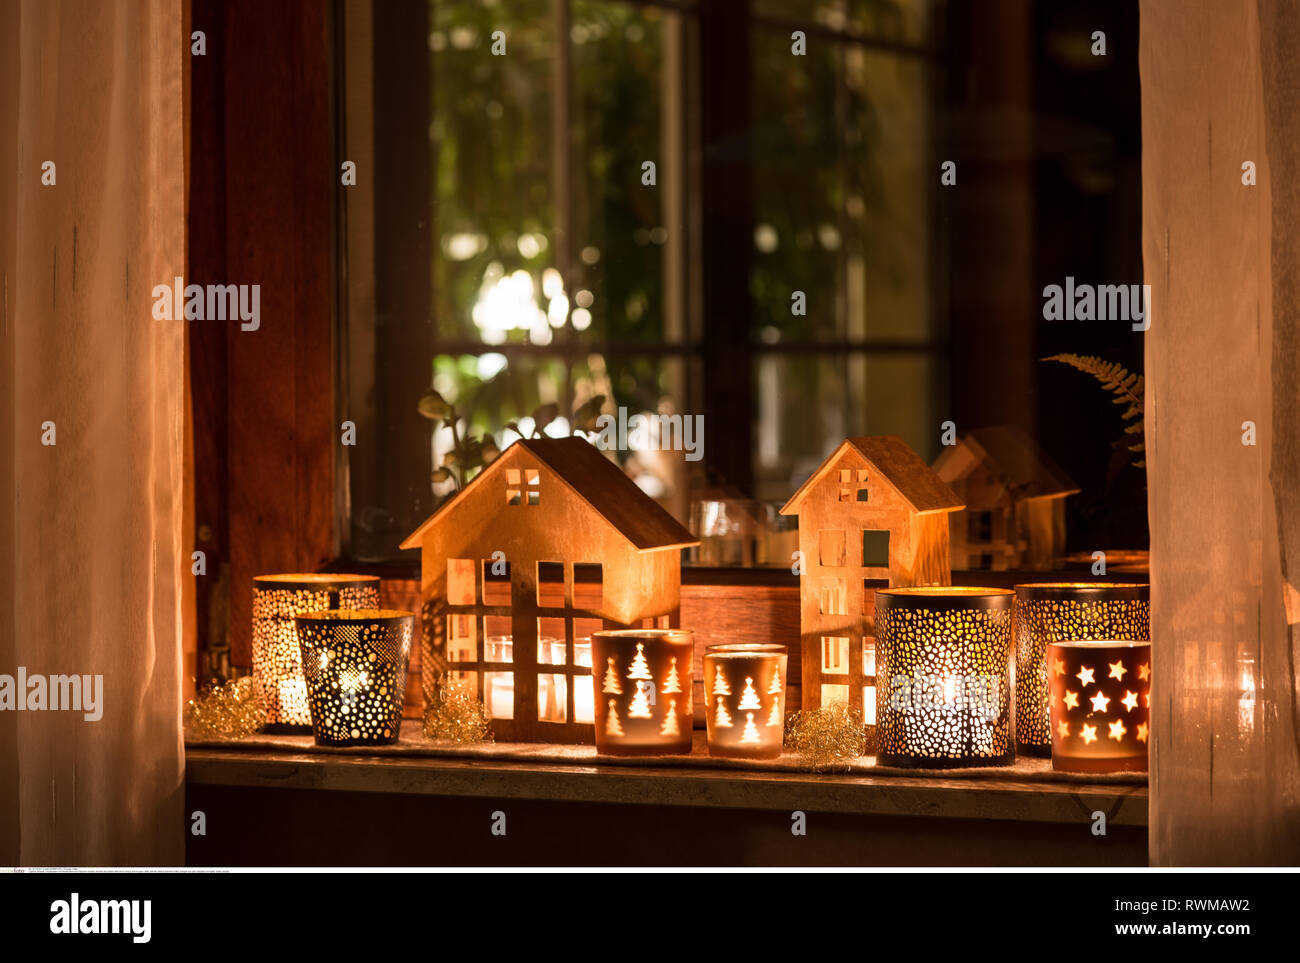 botany, window decoration with storm lamps a, Caution! For Greetingcard-Use / Postcard-Use In German Speaking Countries Certain Restrictions May Apply - Stock Image